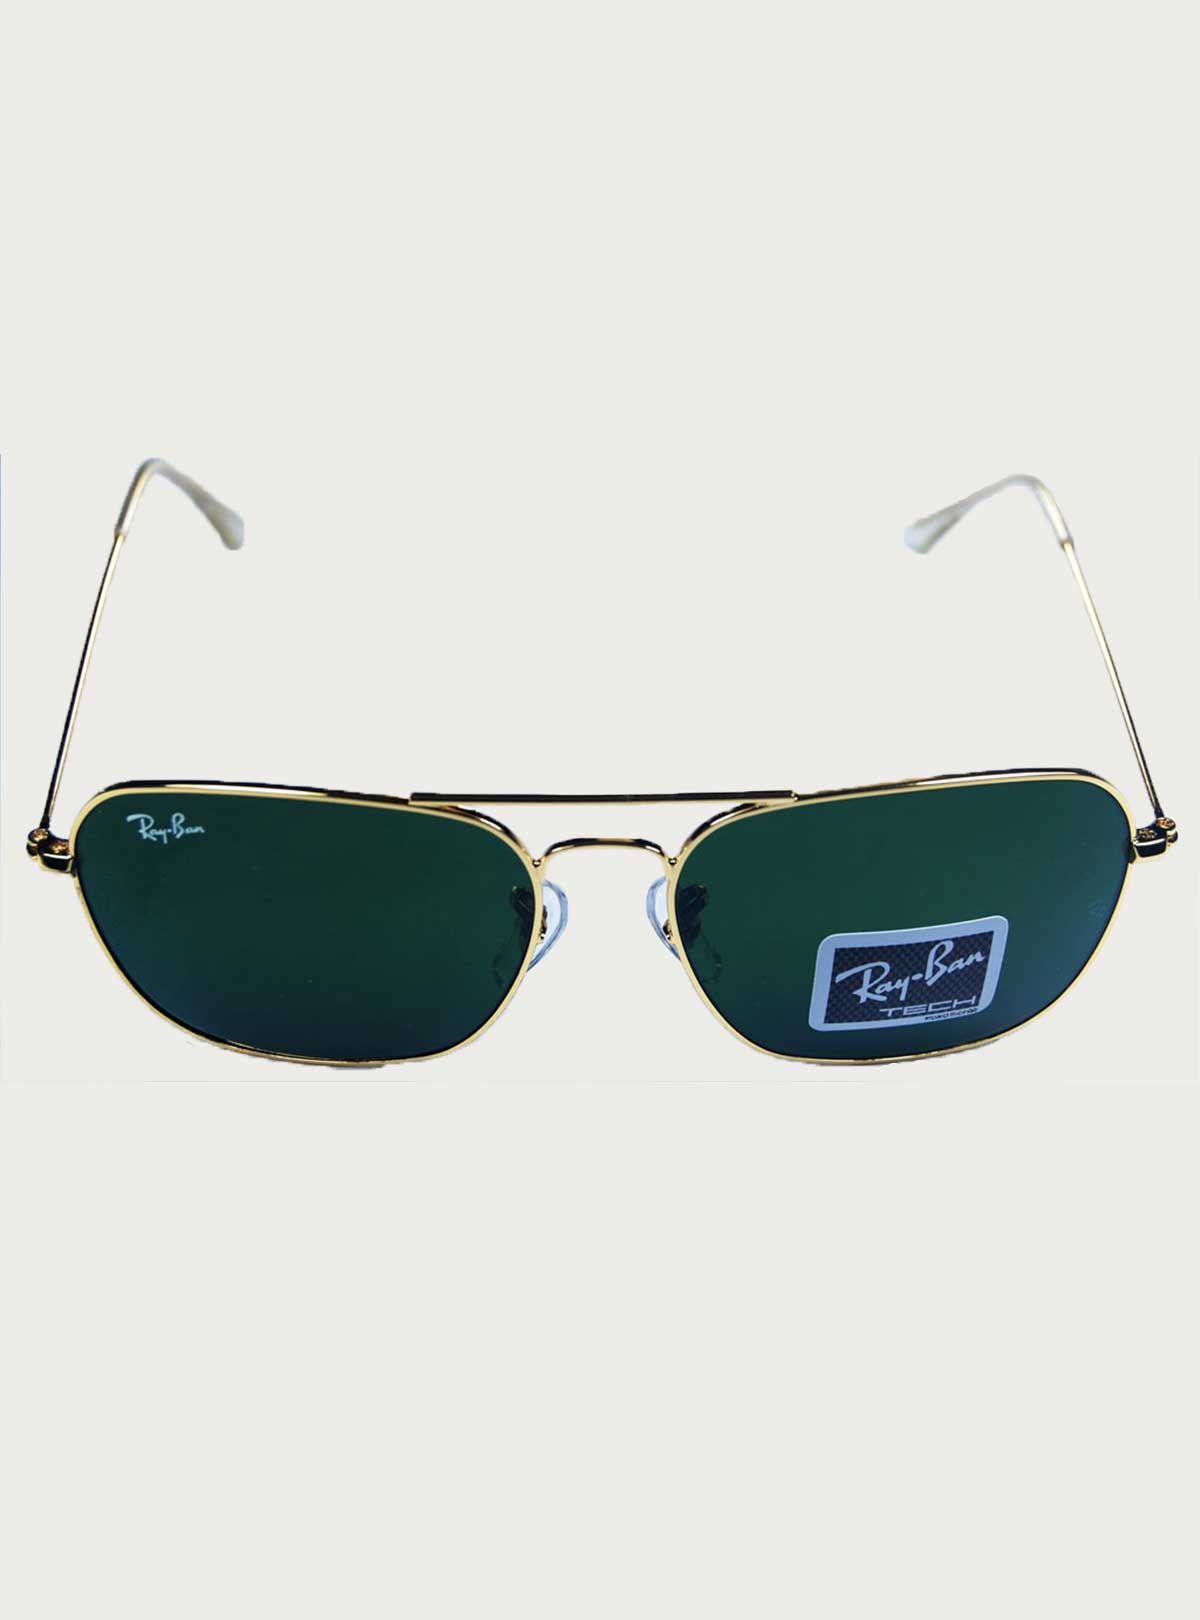 Ray.Ban Tech Golden-Green Sunglass